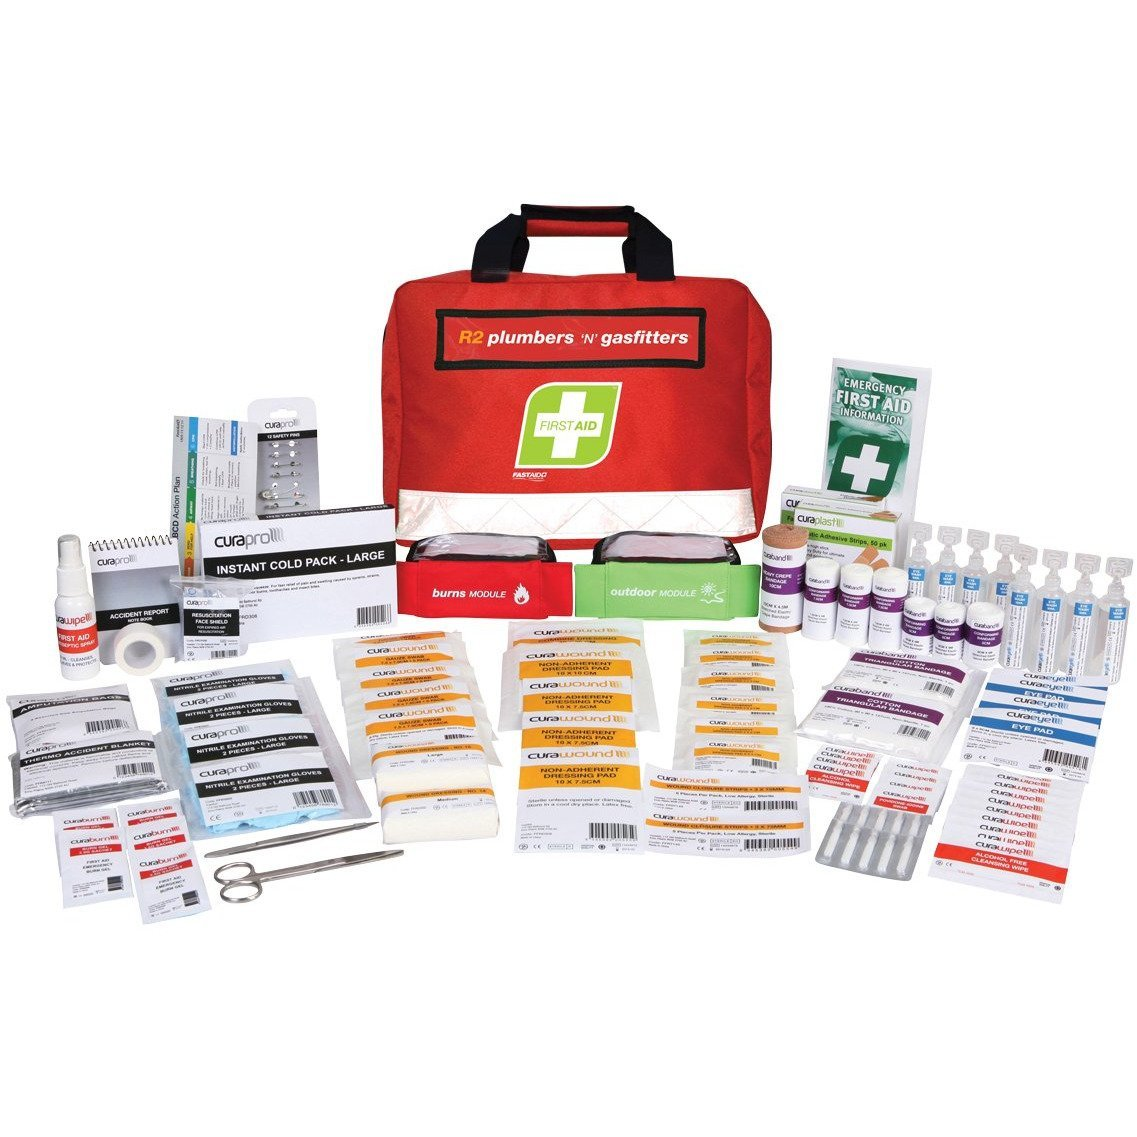 FastAid First Aid Kit- R2- Plumbers & Gasfitters Kit- Soft Pack